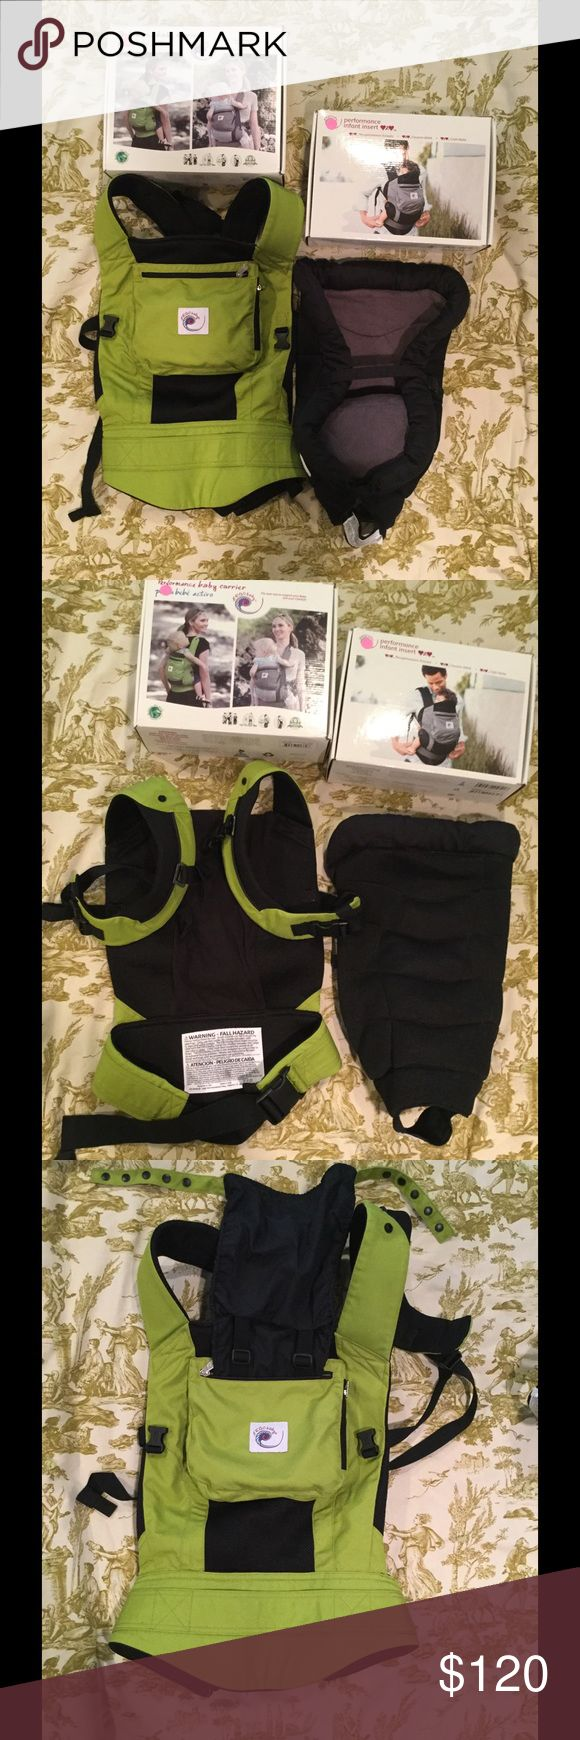 Ergo Baby Performance Carrier and Infant Insert Ergo Baby Performance Baby Carrier and Performance Infant Insert. Both are in EUC. The Ergo Baby carrier is the Spring Green/Black color and the Infant Insert is grey and black.   Both come with their original boxes. The boxes have some wear and tear. The manuals for both are also included.  